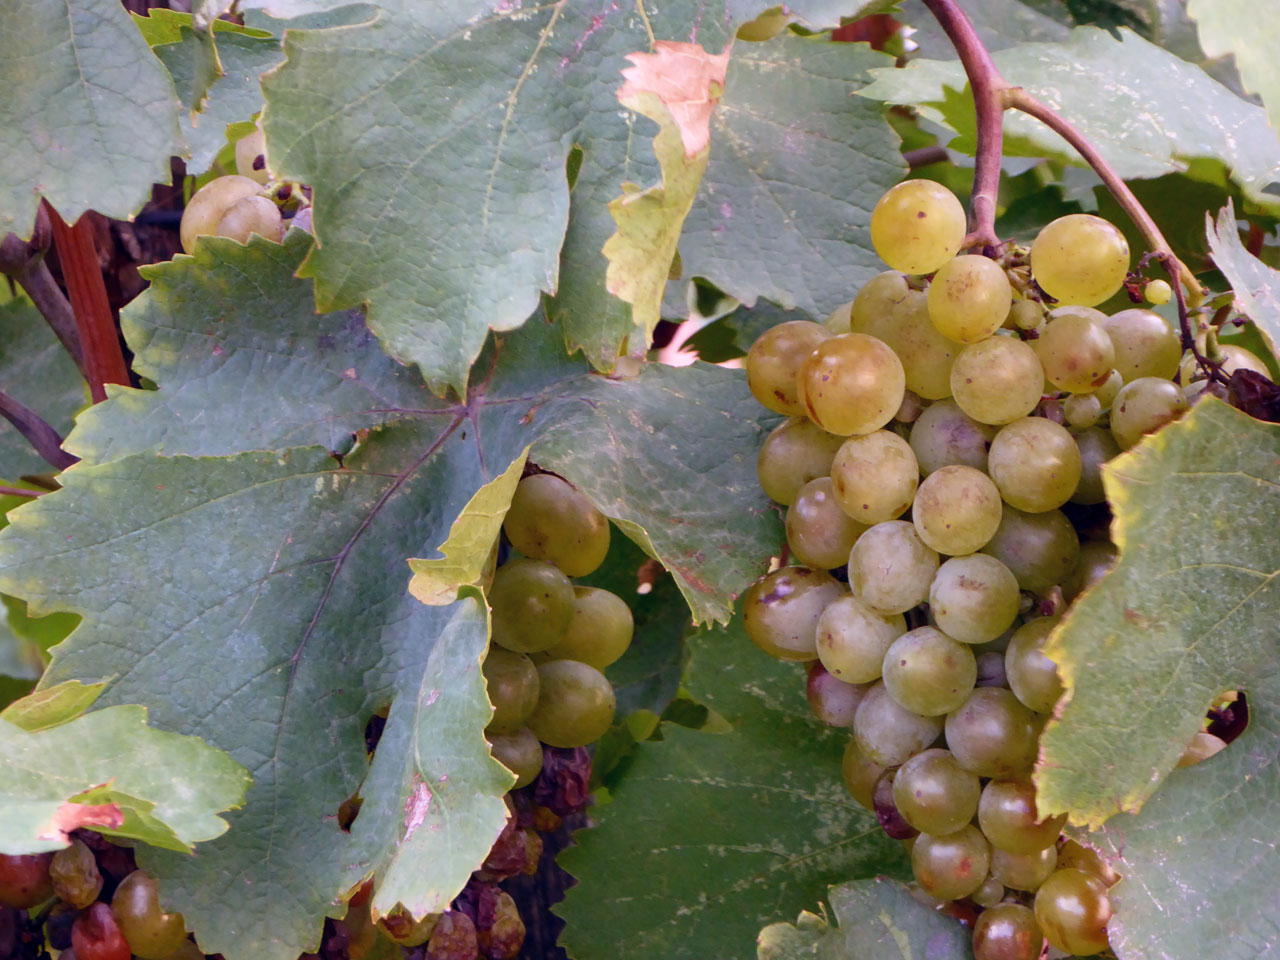 Grapes at the Alaverdi Monastery, Georgia